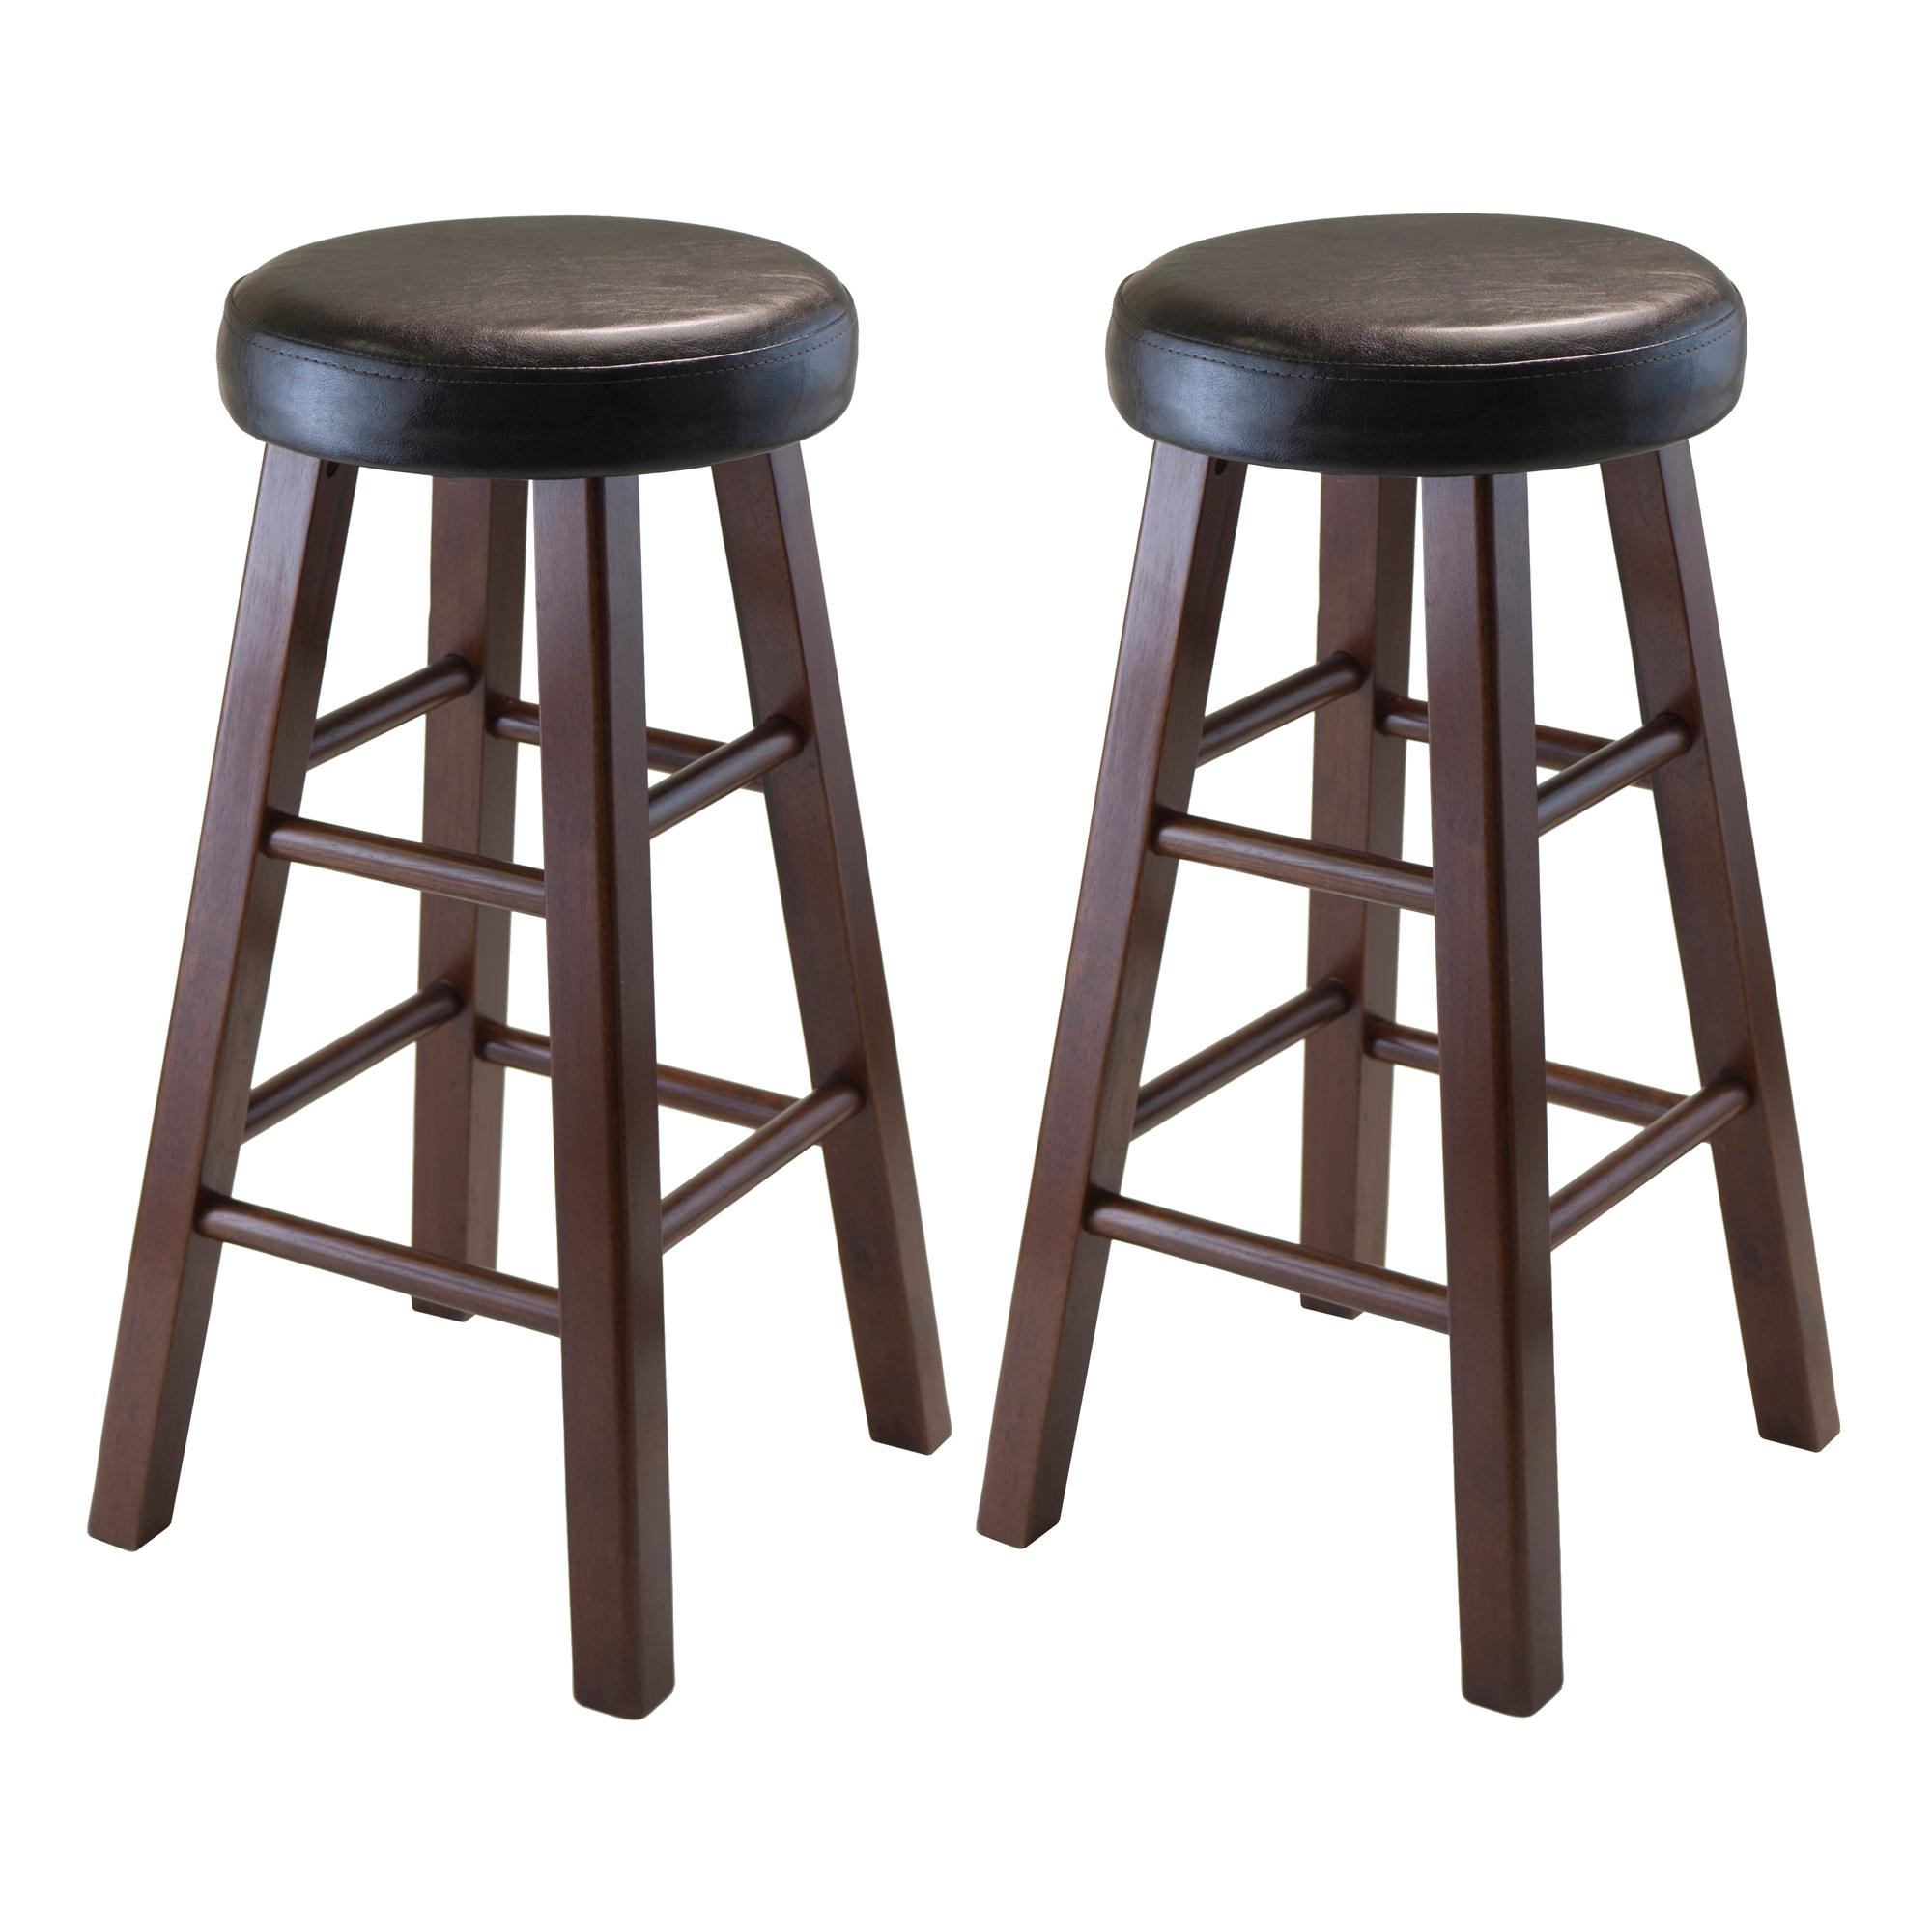 Awesome Bar Stools 27 Inches